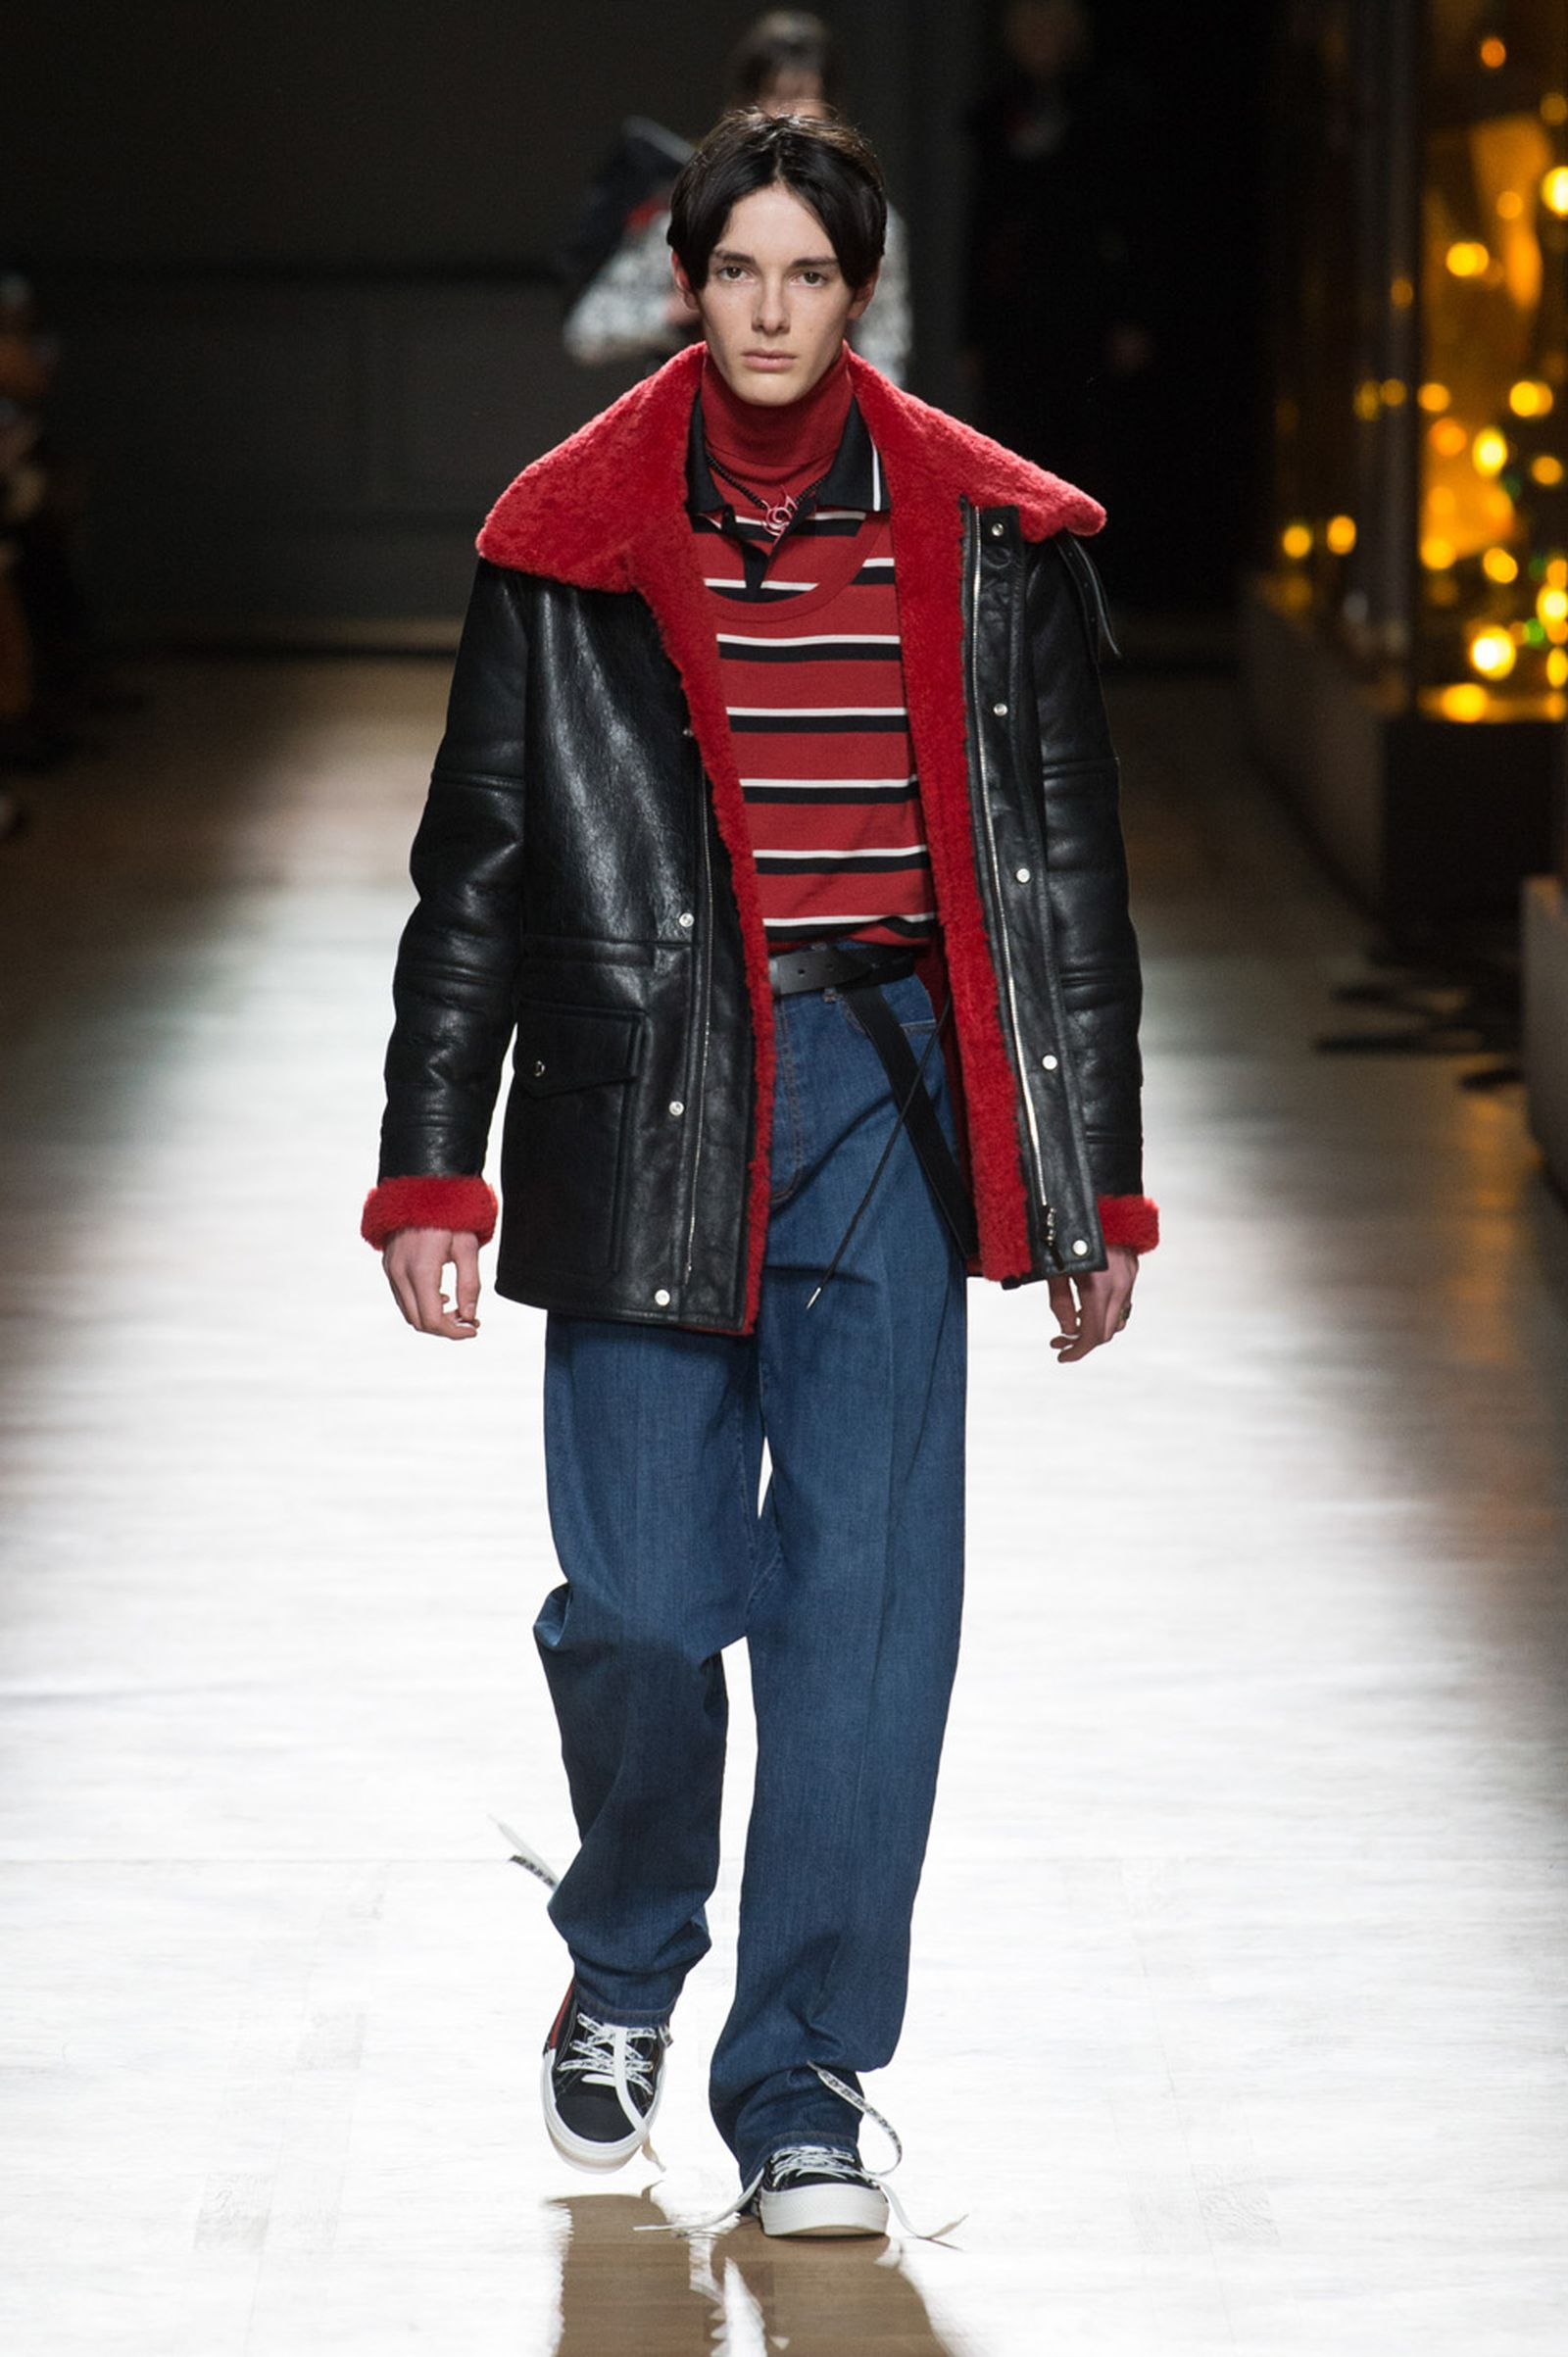 DIOR HOMME WINTER 18 19 BY PATRICE STABLE look19 Fall/WInter 2018 runway